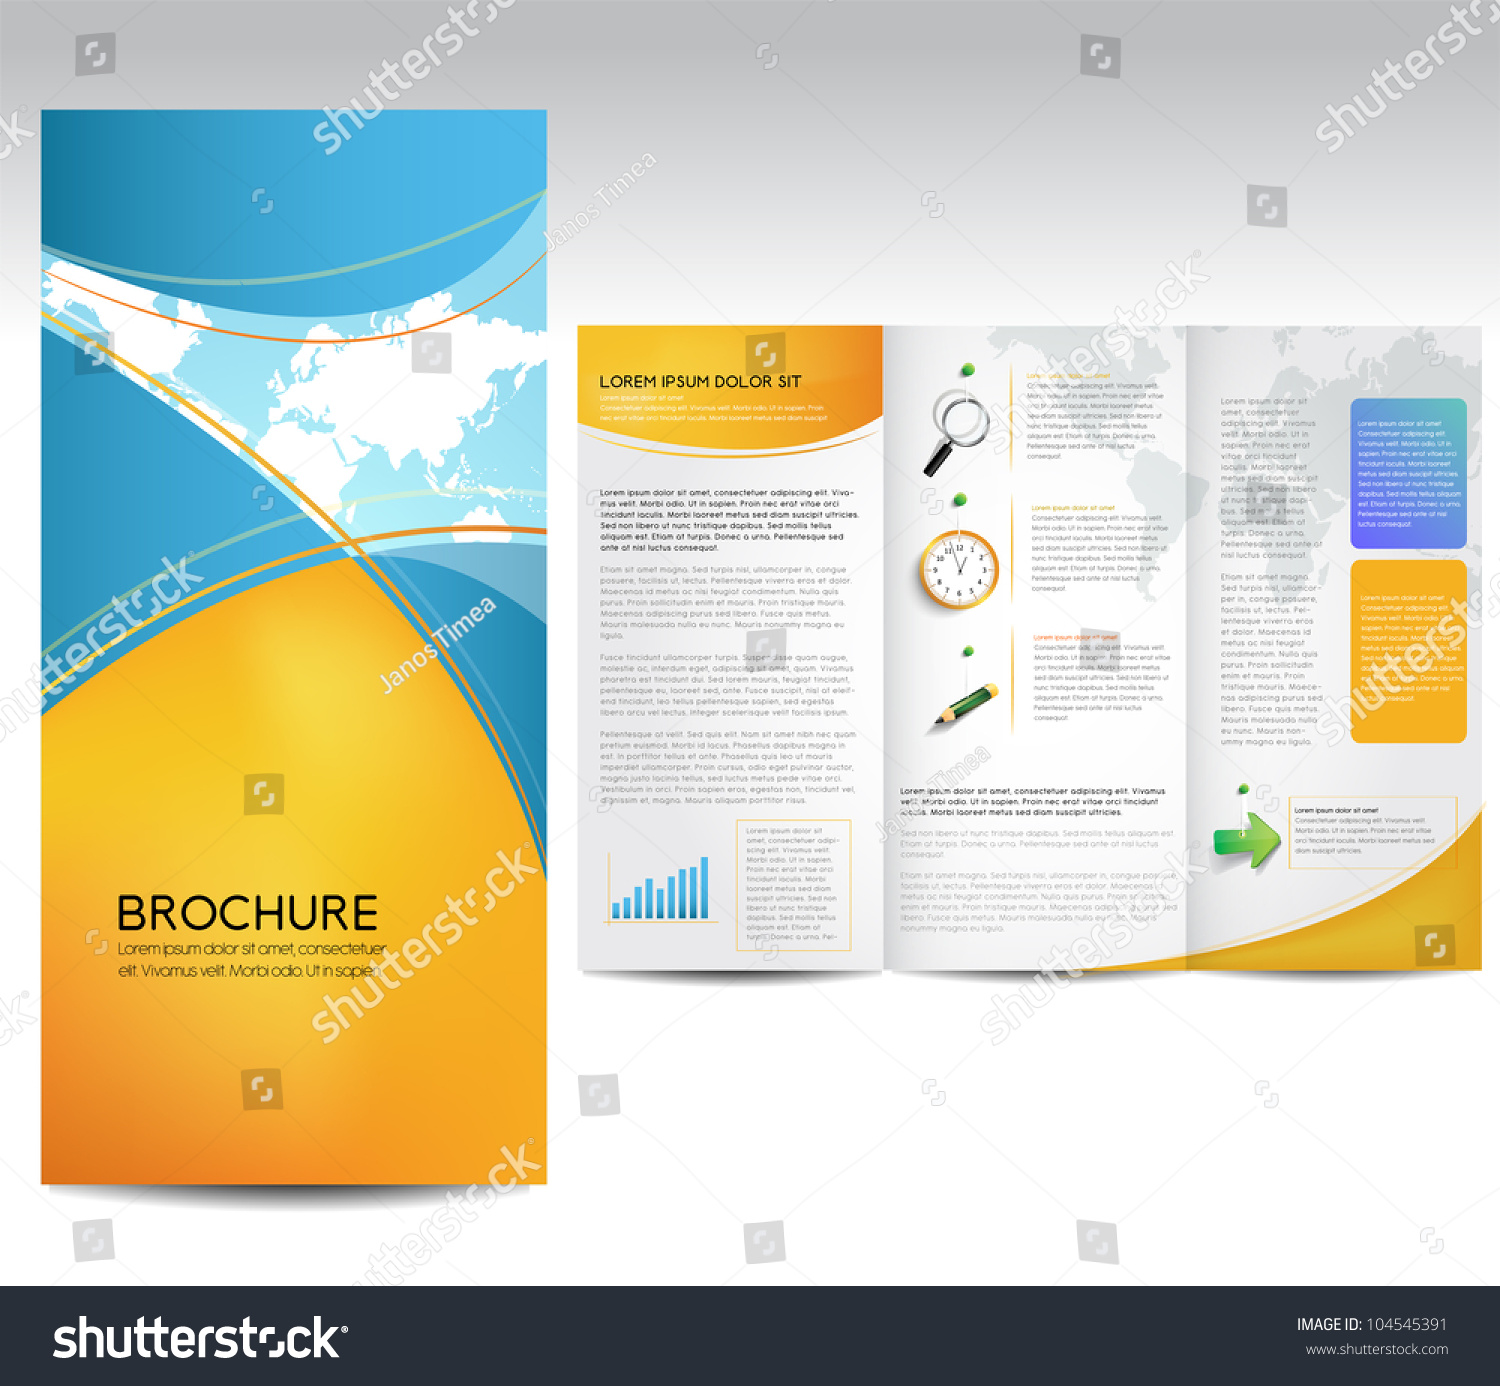 Vector brochure layout design template stock vector for Brochure background templates